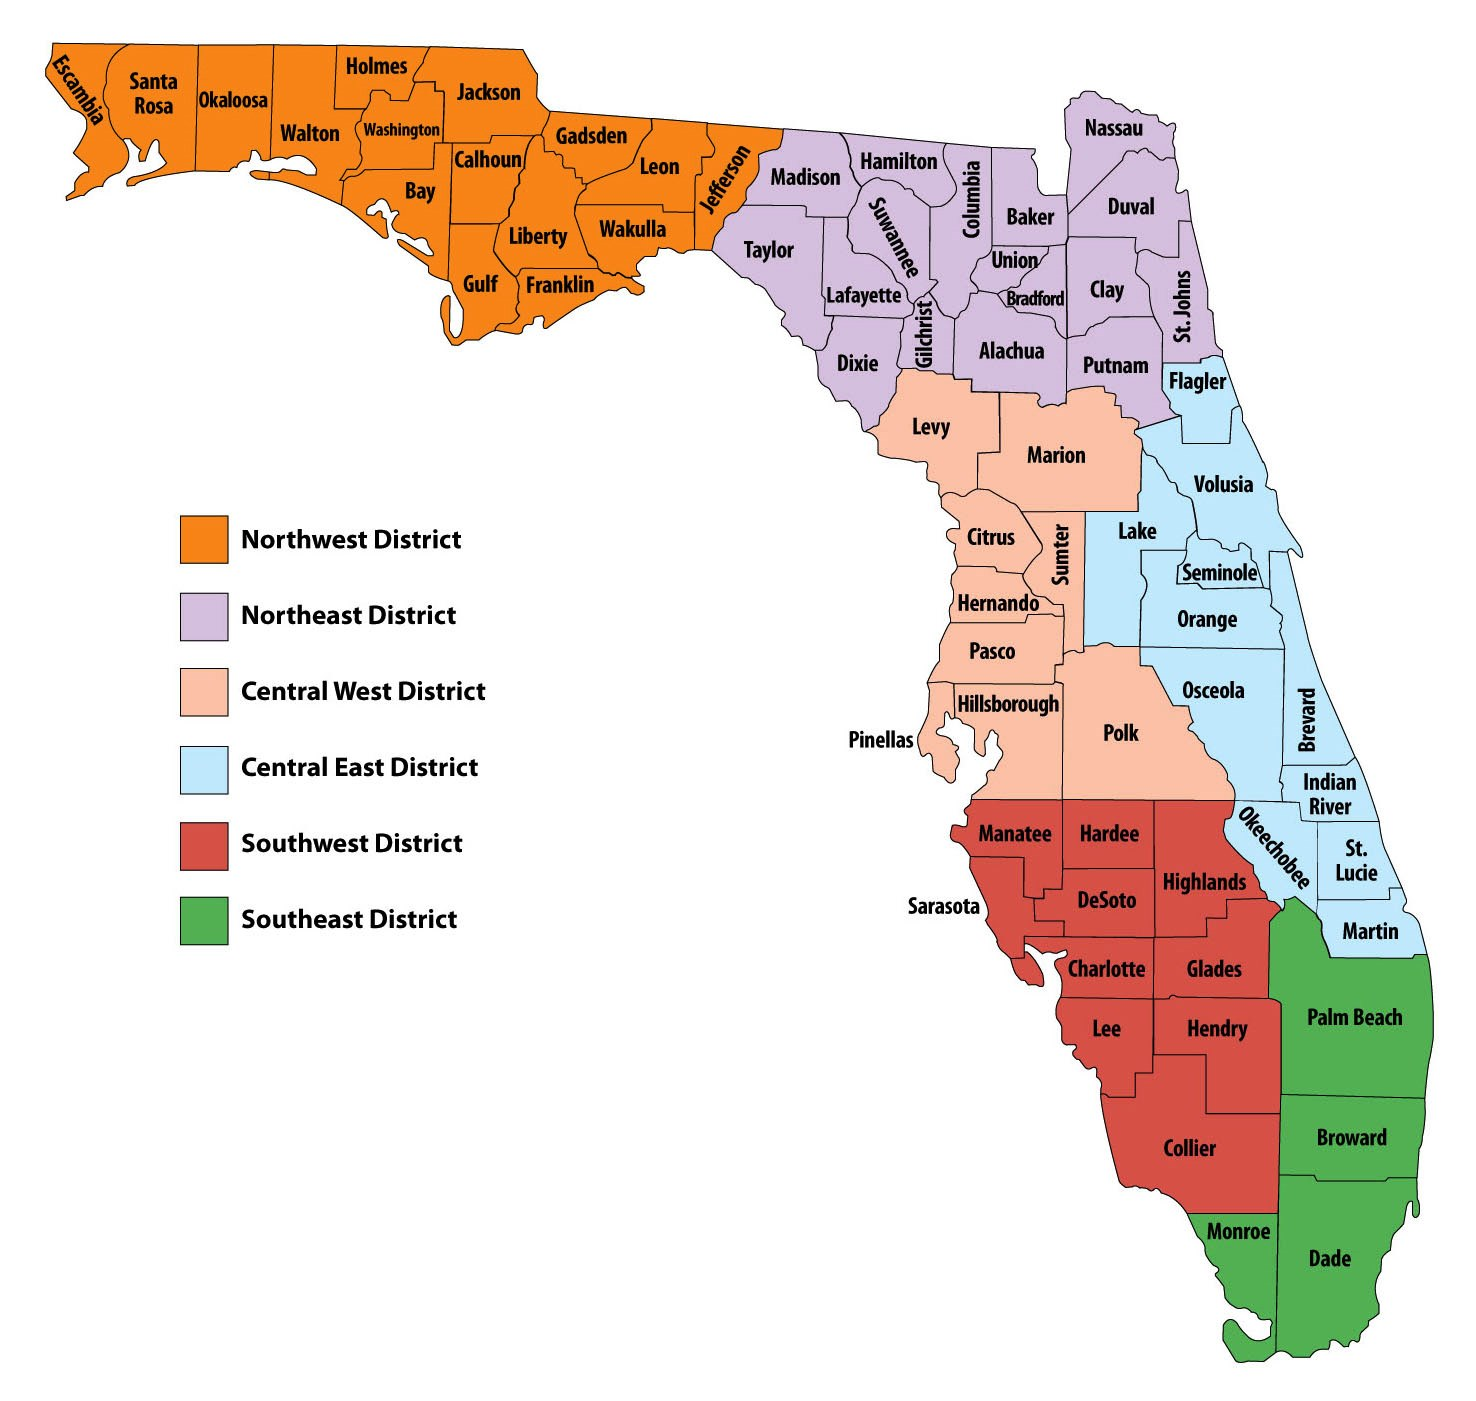 Florida County Maps Florida county map | Angel Flight SoutheastAngel Flight Southeast